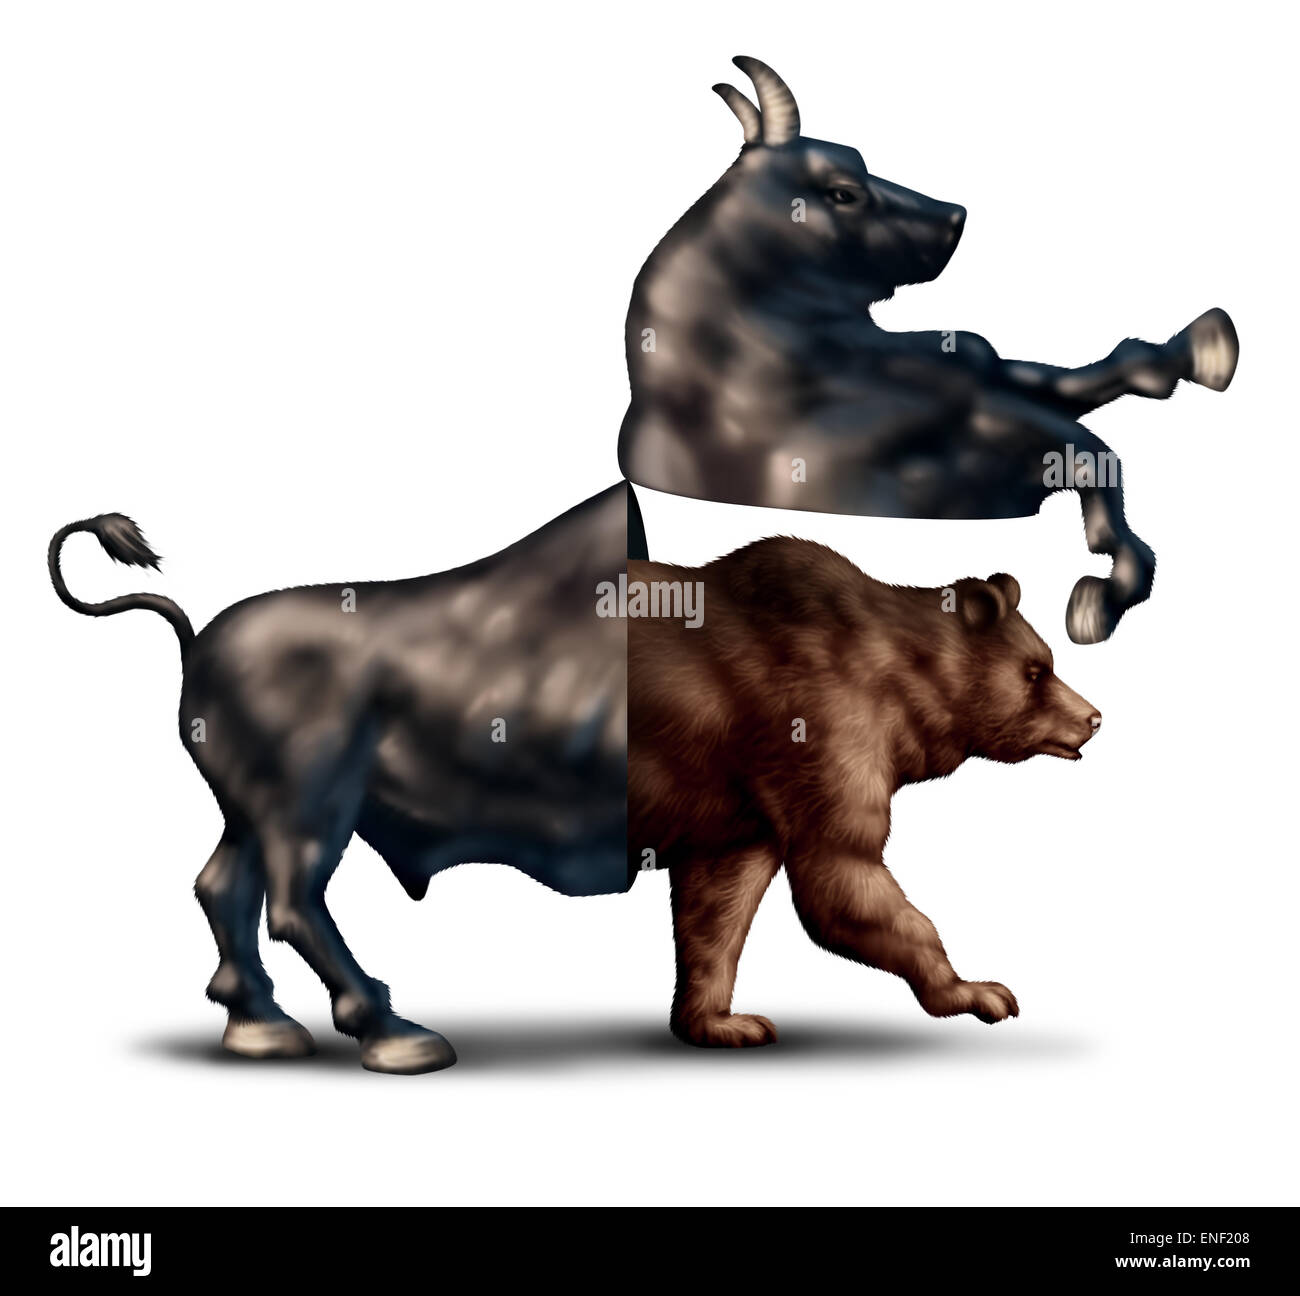 Bear market correction financial business concept as a bull opening up and revealing an emerging bearish stock market - Stock Image